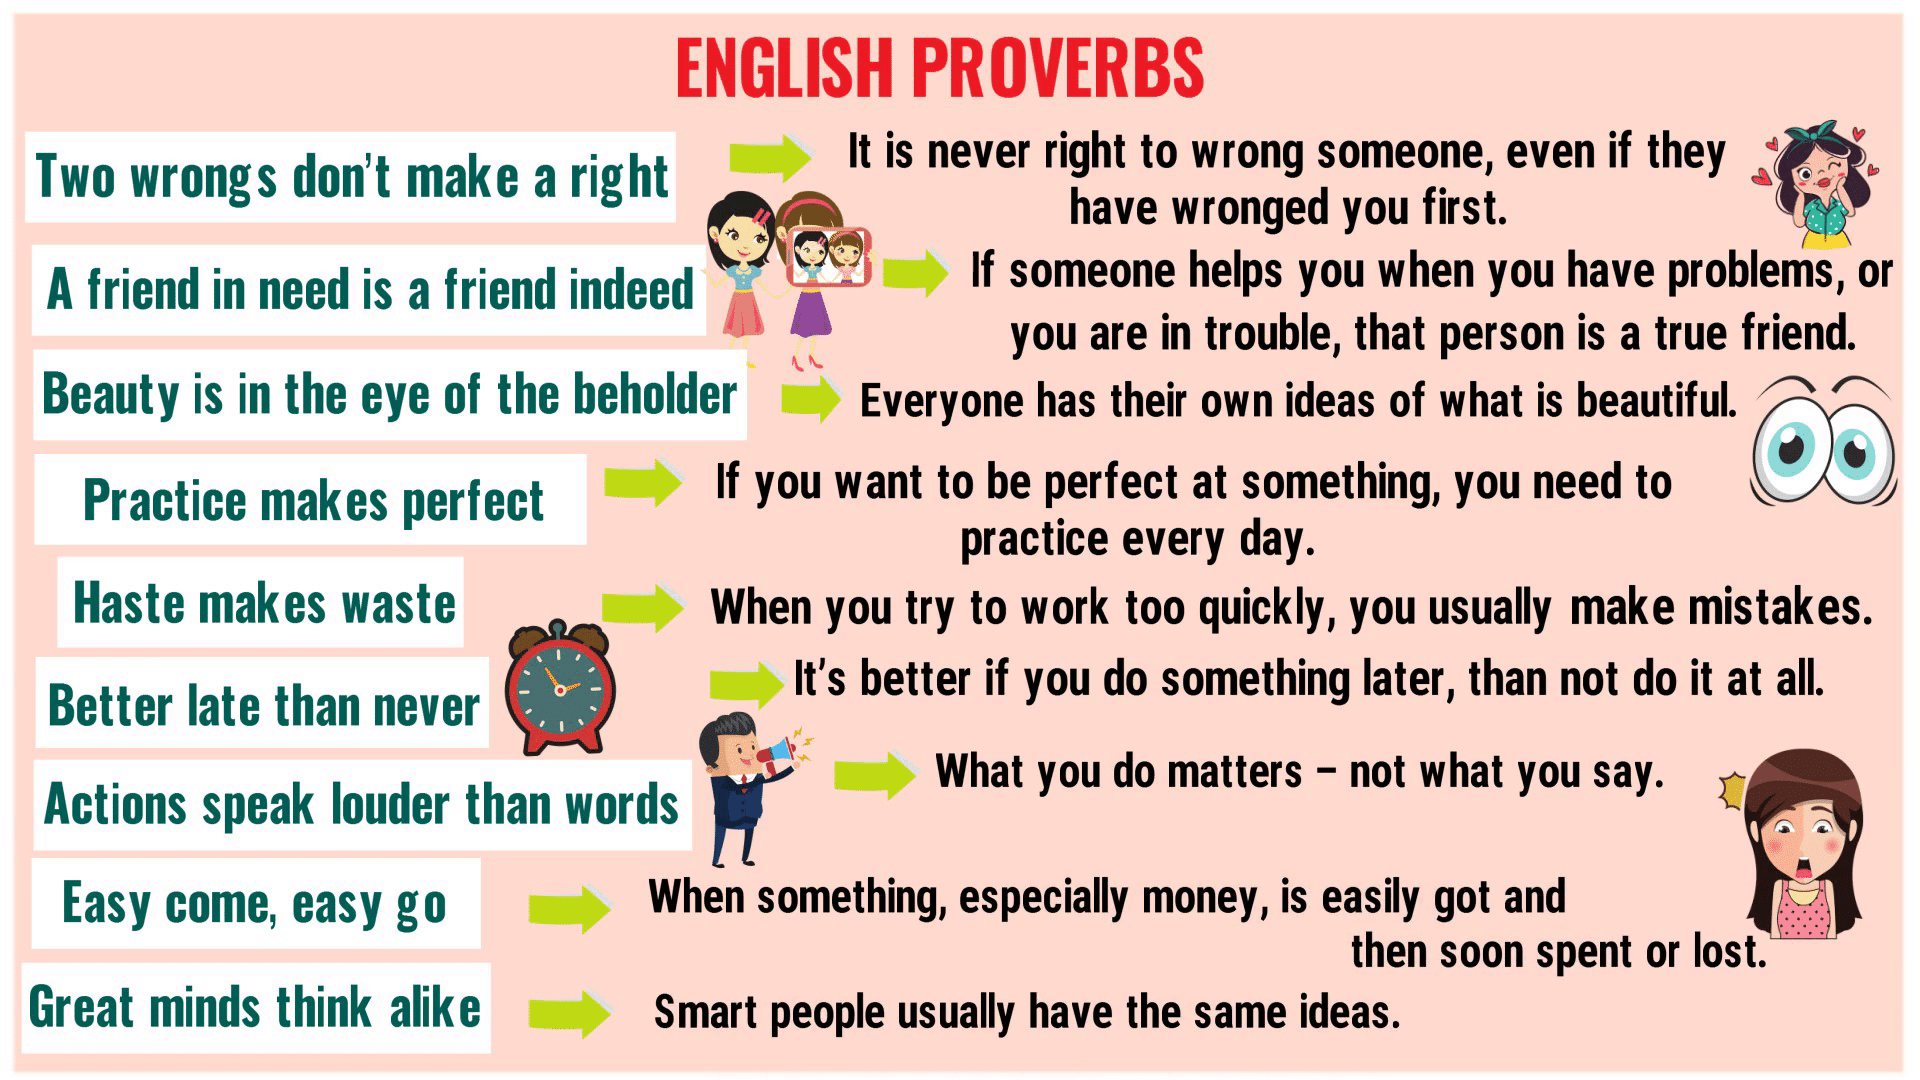 Proverbs Top 30 English Proverbs And Their Meanings